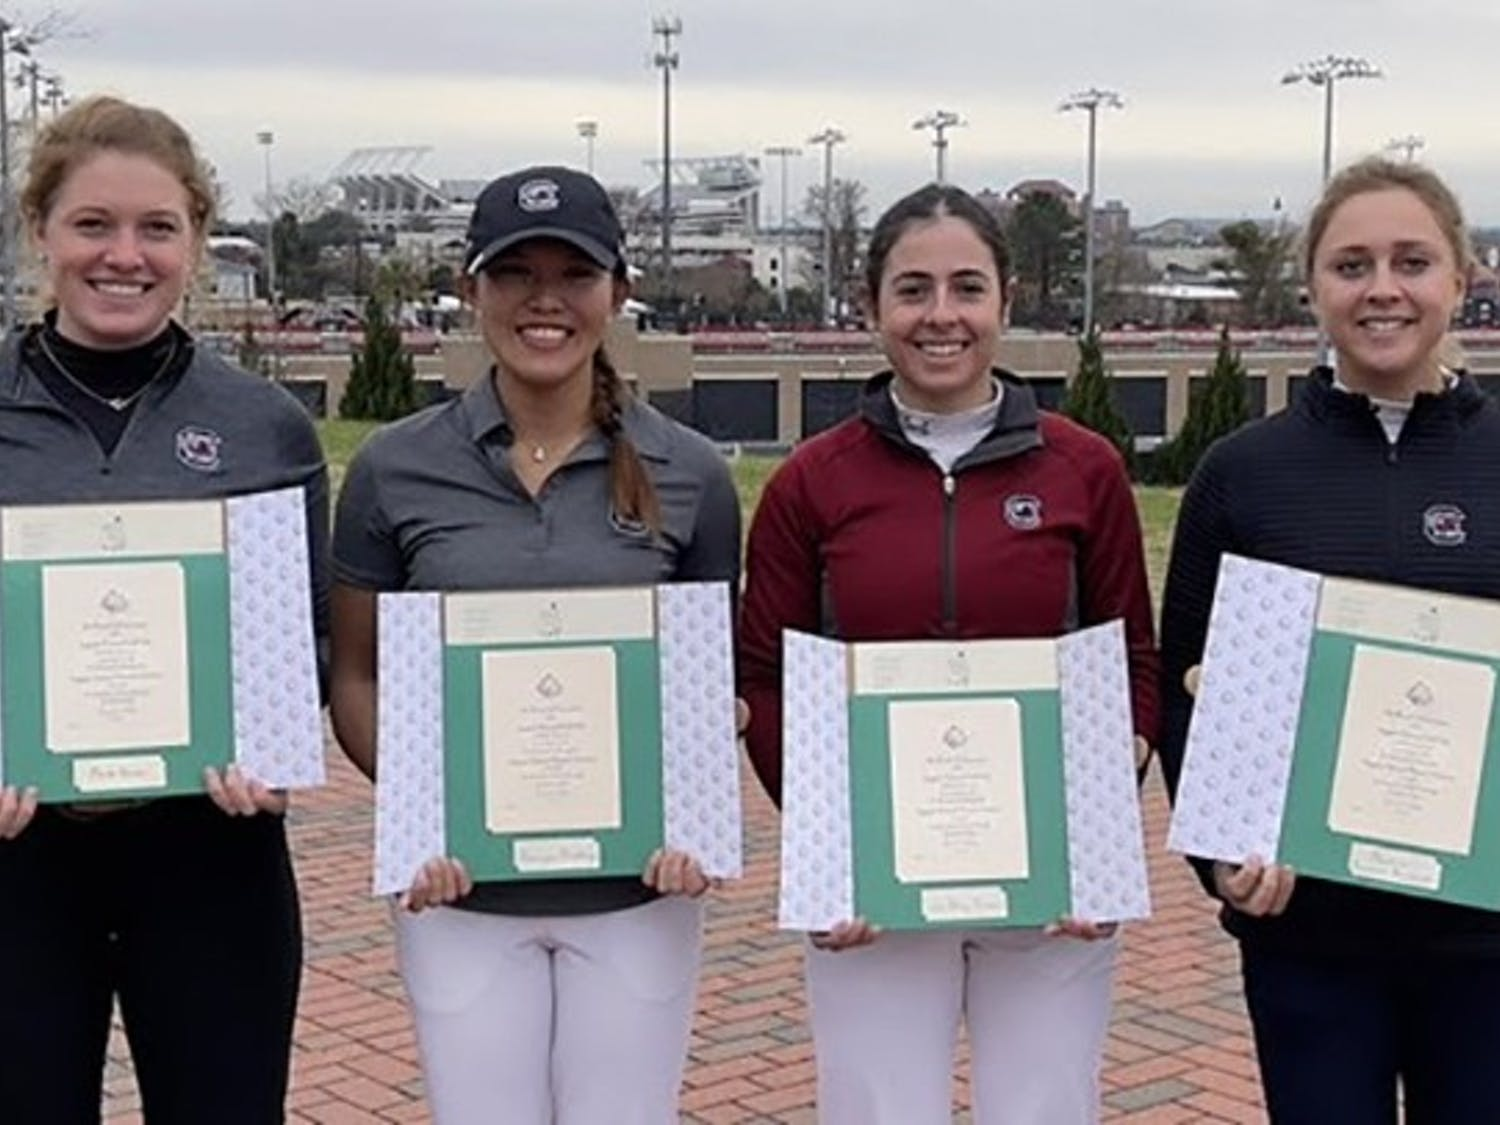 Four members of the South Carolina women's golf team pose with their invitations to the 2021 Augusta National Women's Amateur tournament.